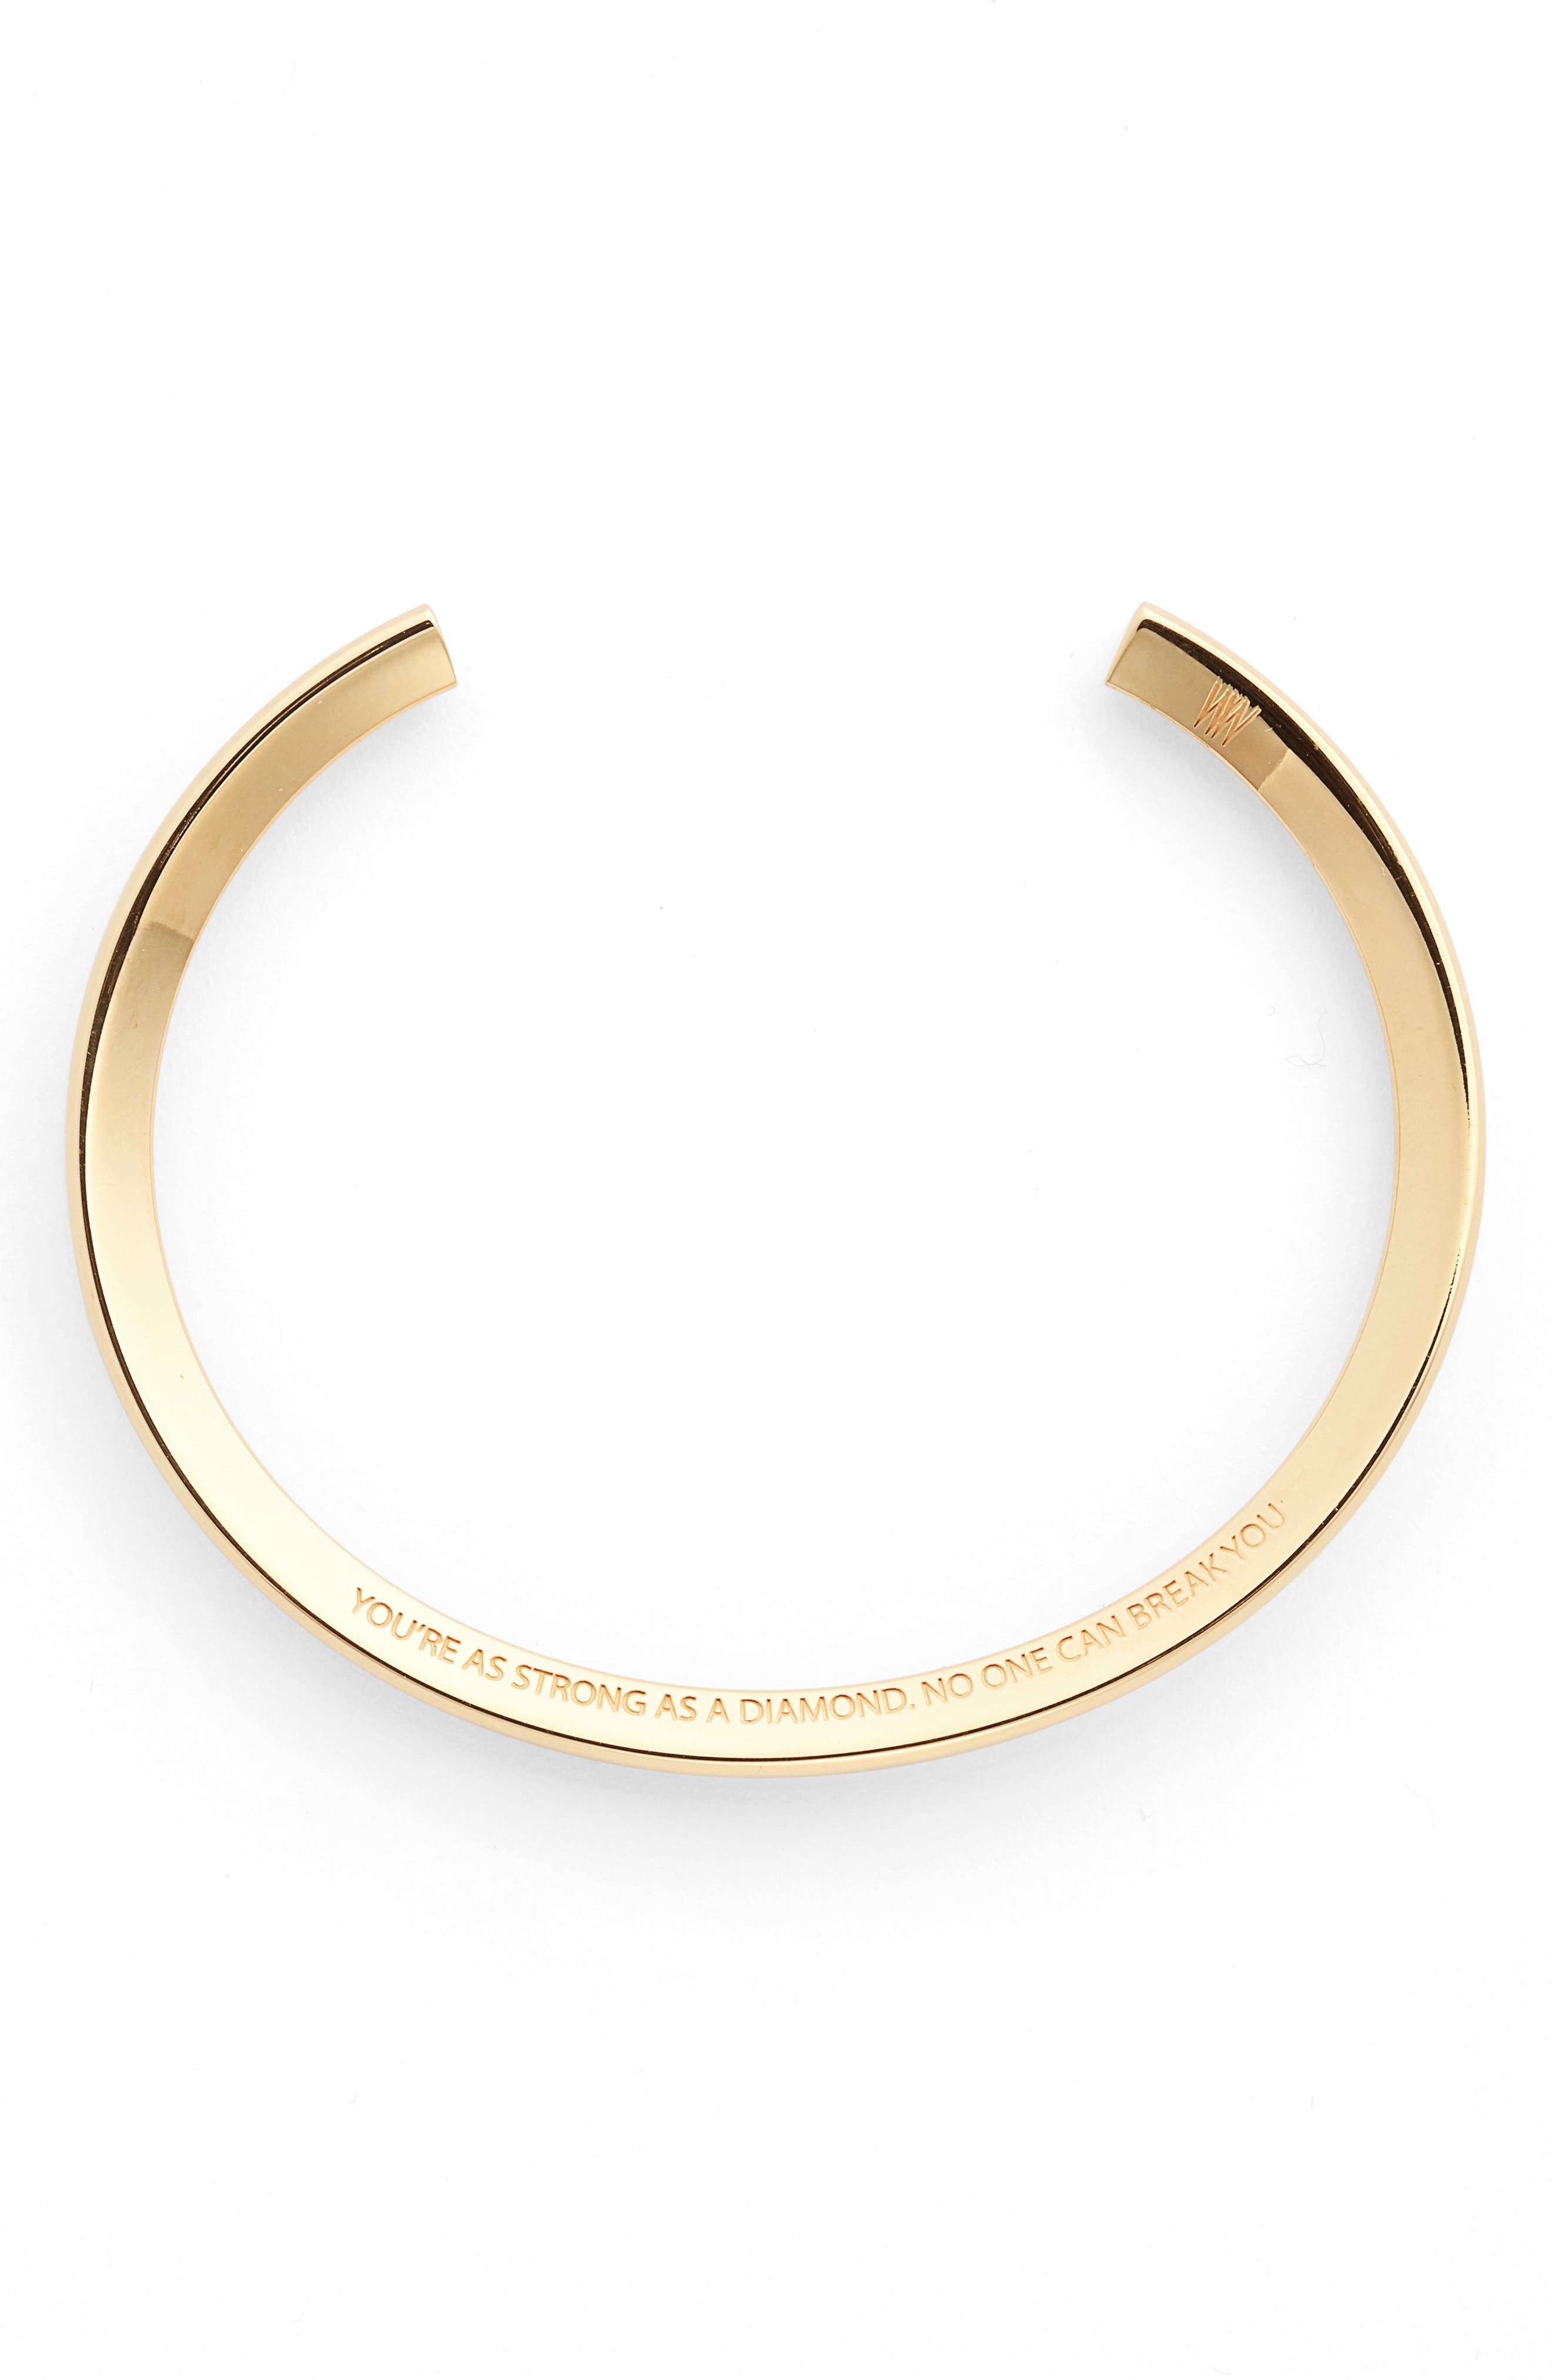 Alternate Image 1 Selected - Stella Valle You're as Strong as a Diamond Cuff